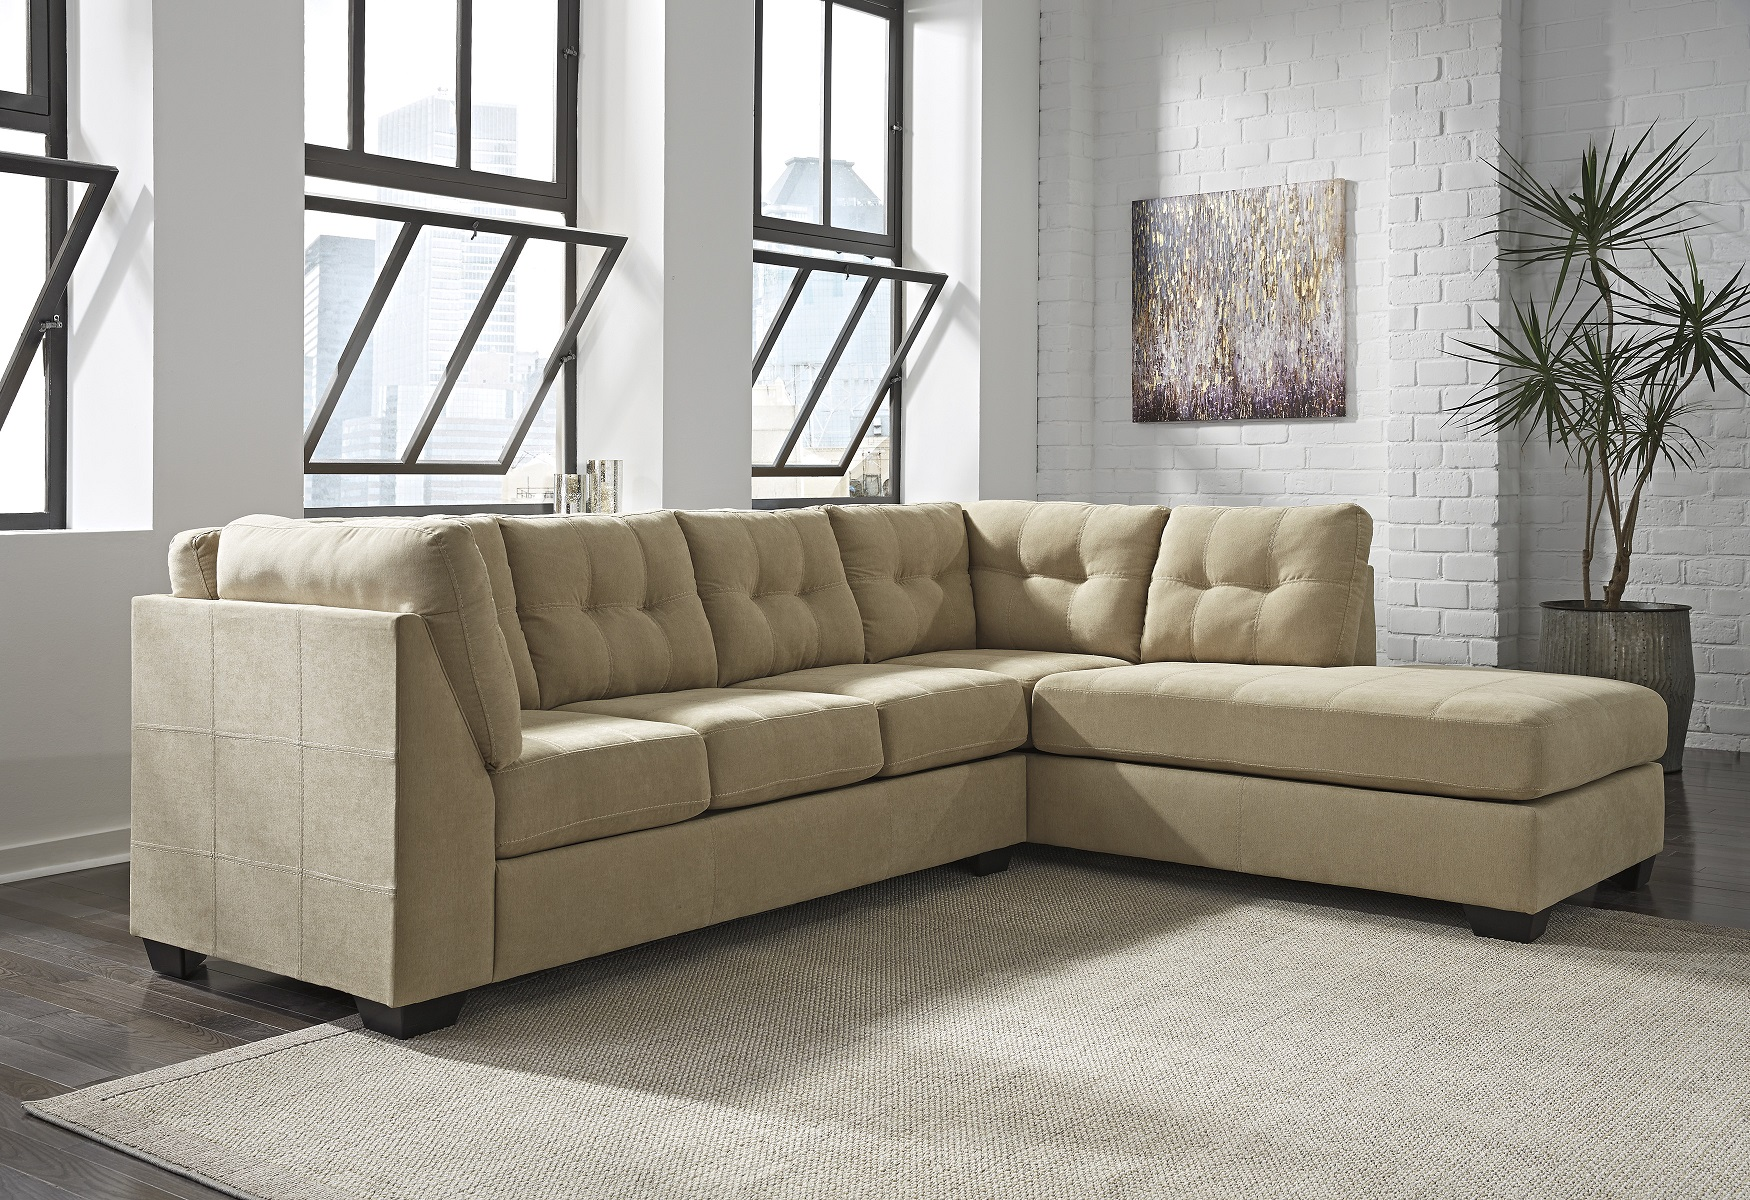 Maier 45203-17 by Ashley Sectional Sofa : ashley sectional couches - Sectionals, Sofas & Couches